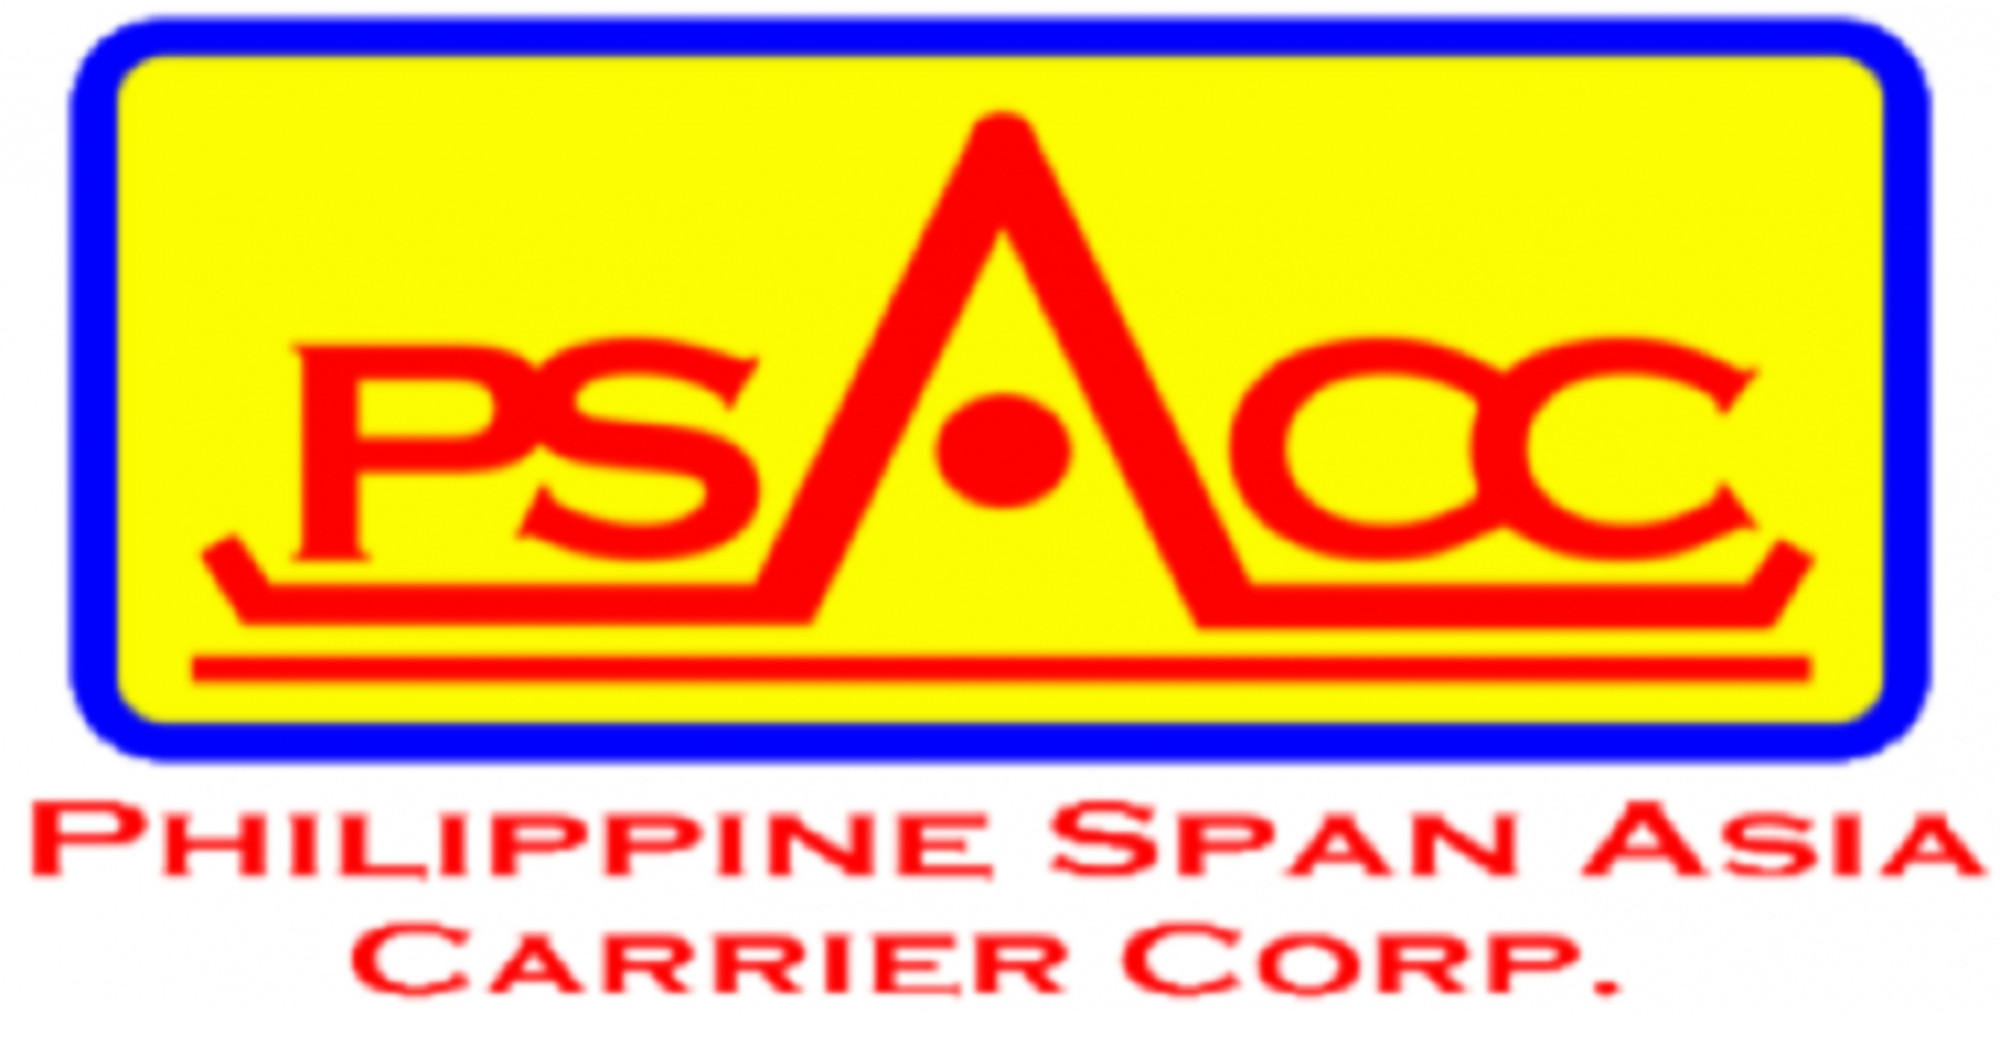 Philippine Span Asia Carrier Corporation - Wikipedia